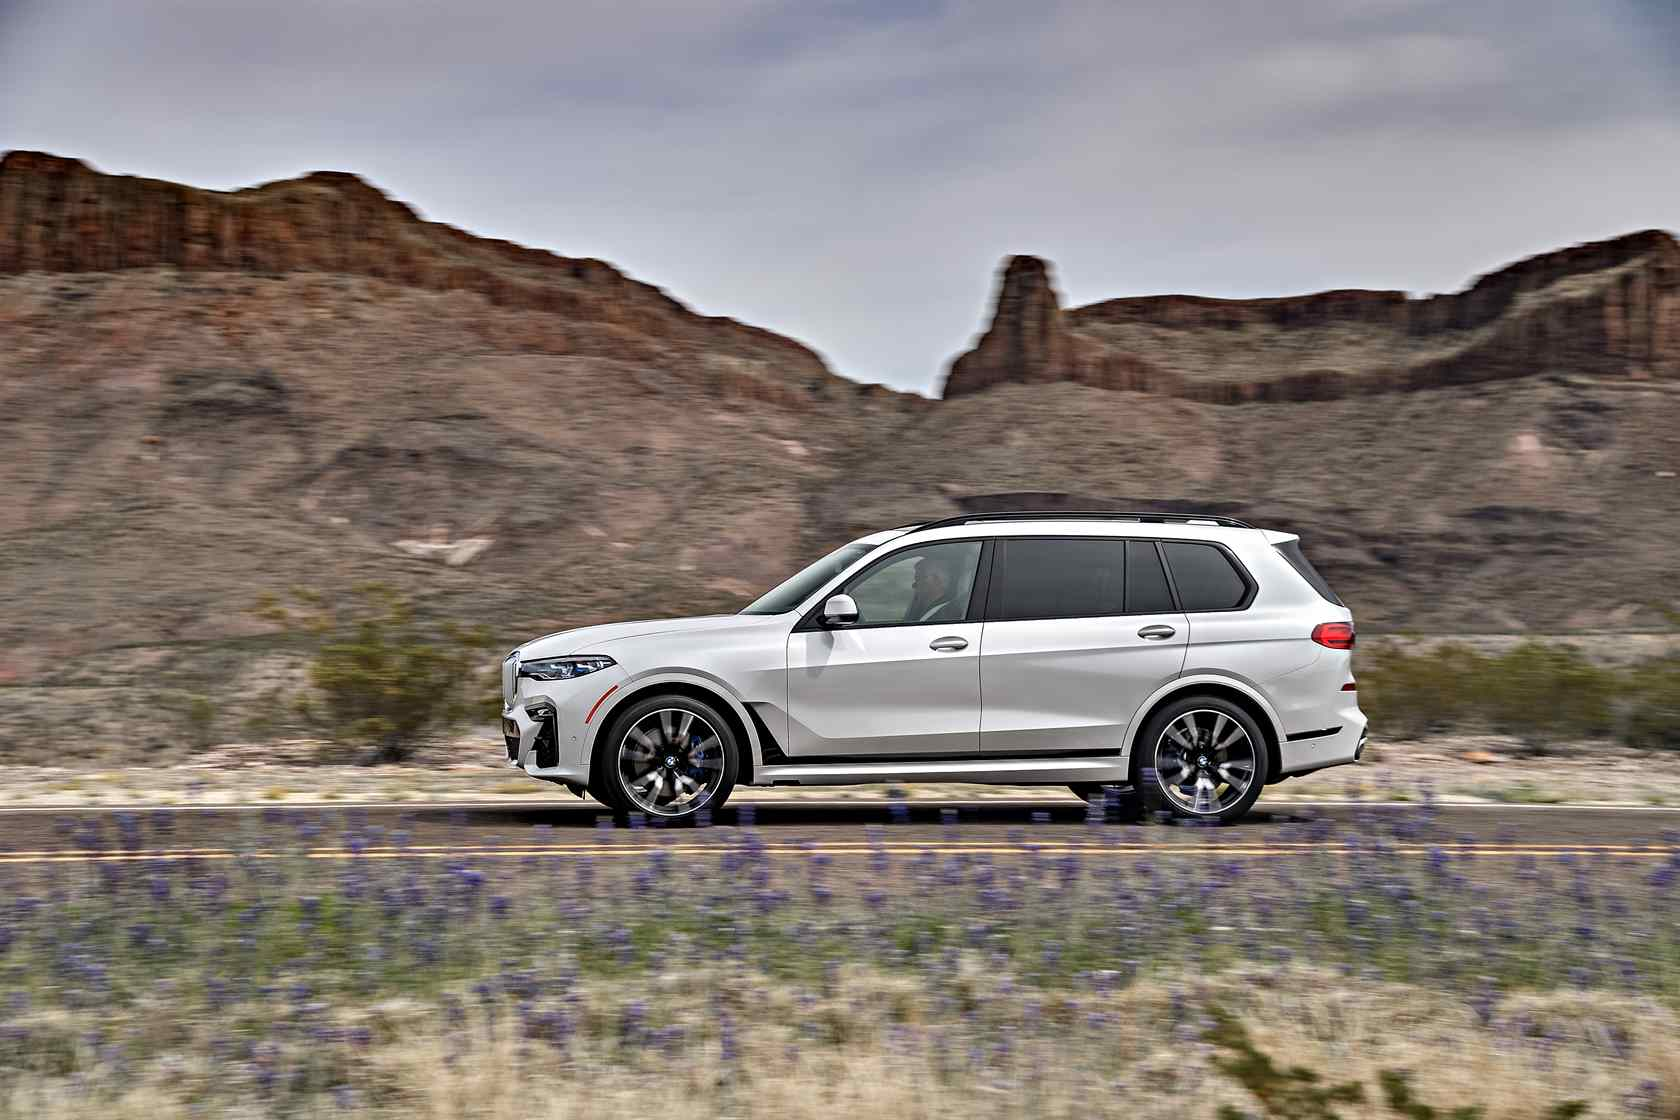 2019 Bmw X7 First Drive Unexpected Agility In A 7 Seat Luxury Suv